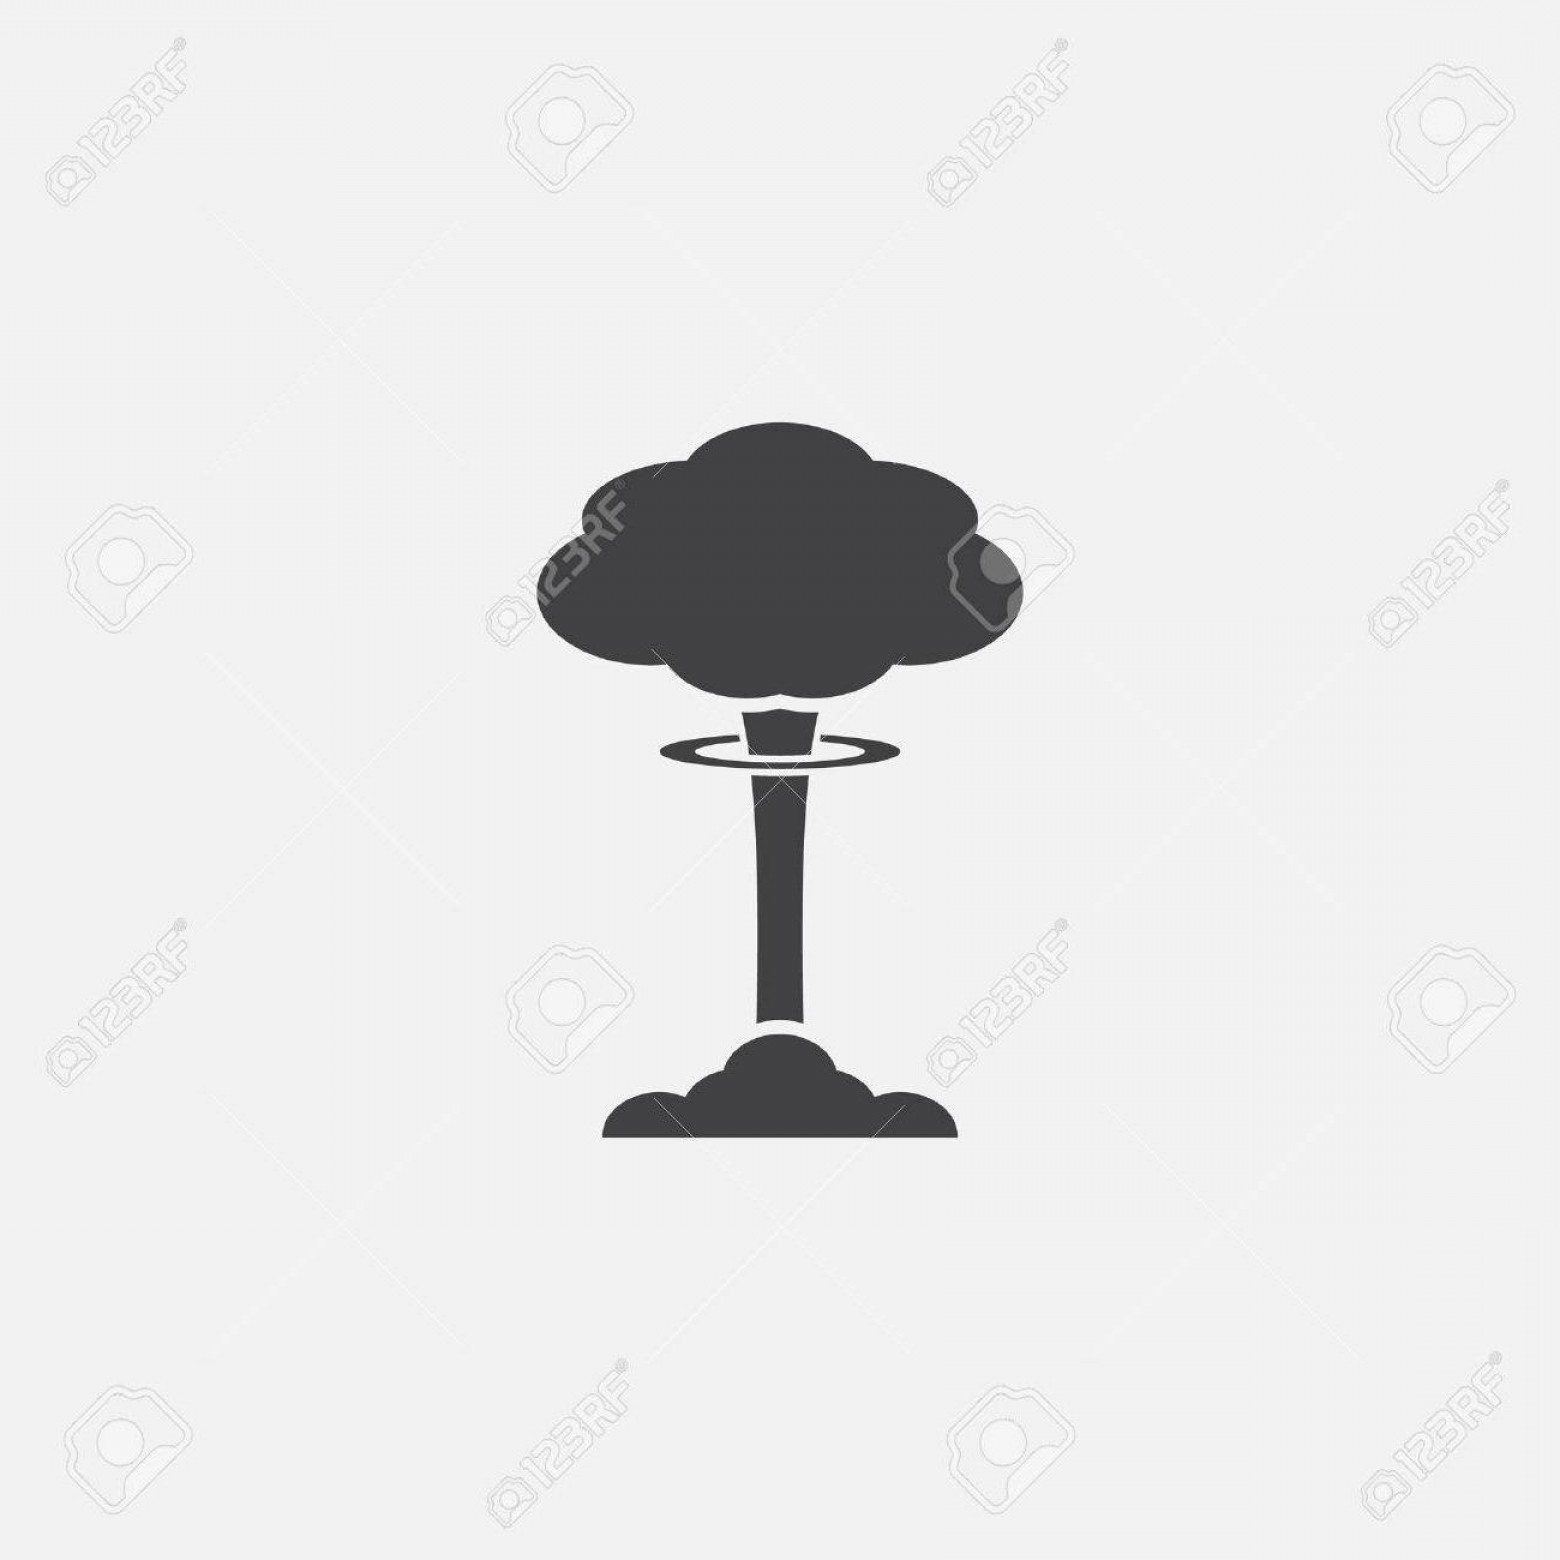 Atomic Bomb Explosion Vector: Unique Mushroom Cloud Cartoon Vector File Free